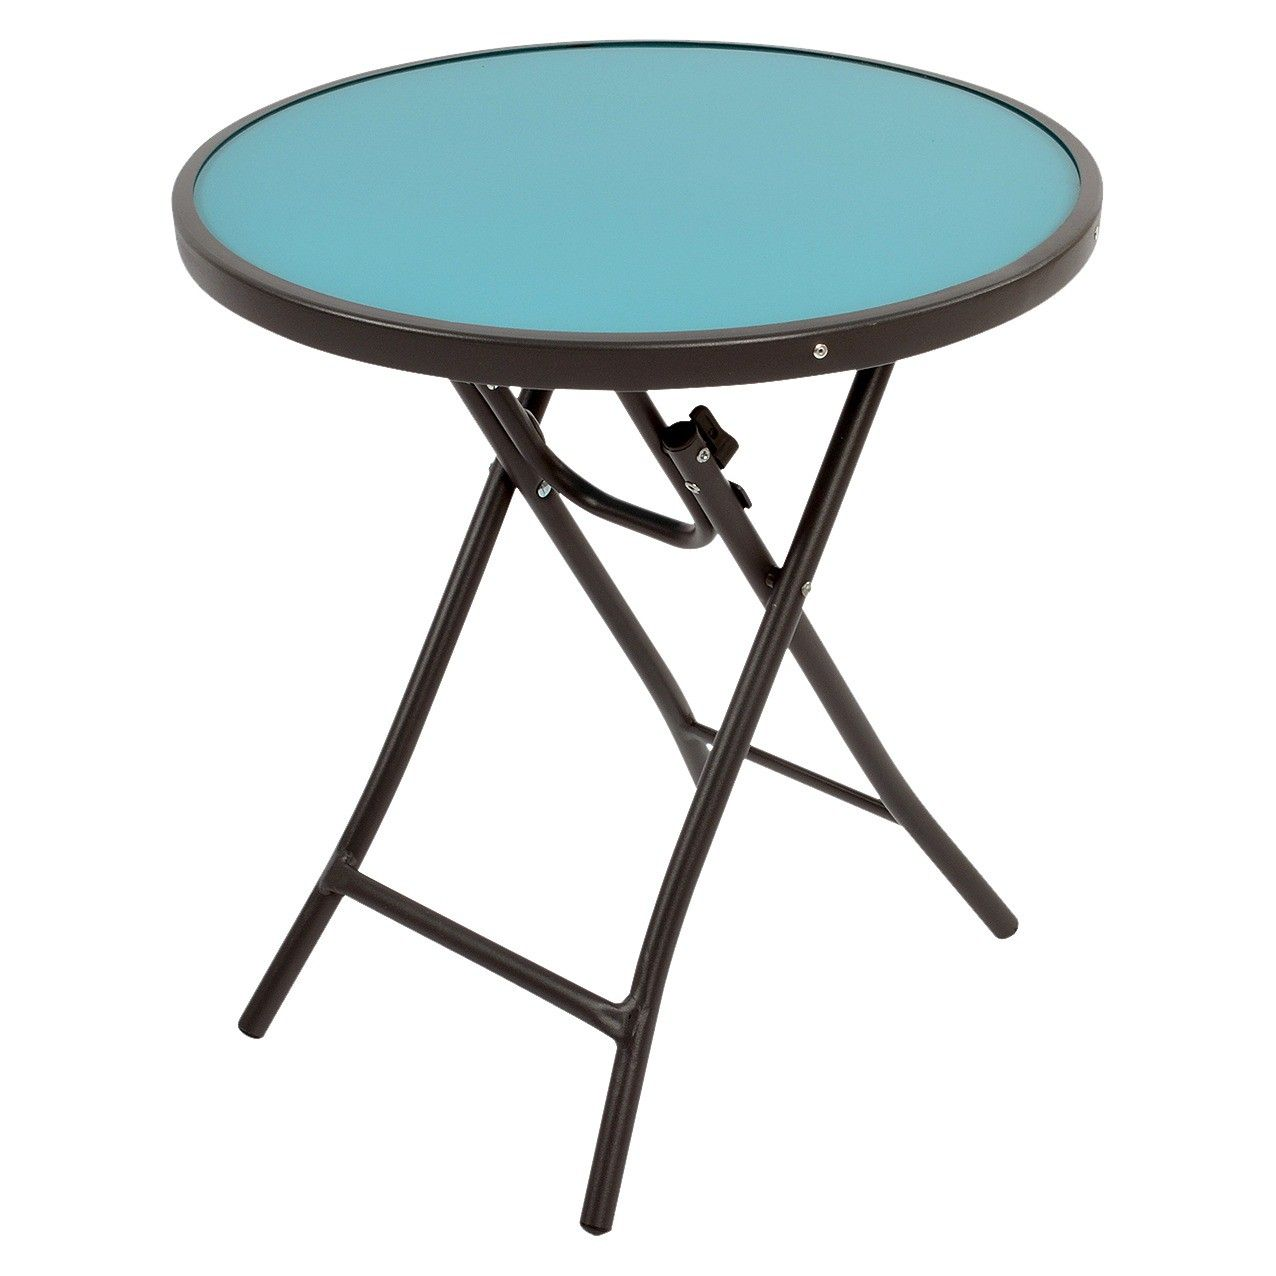 bistro accent table turq target patio patios metal turquoise room essentials white outdoor interior barn doors slim bedside side with storage marble top oval farmhouse dining home